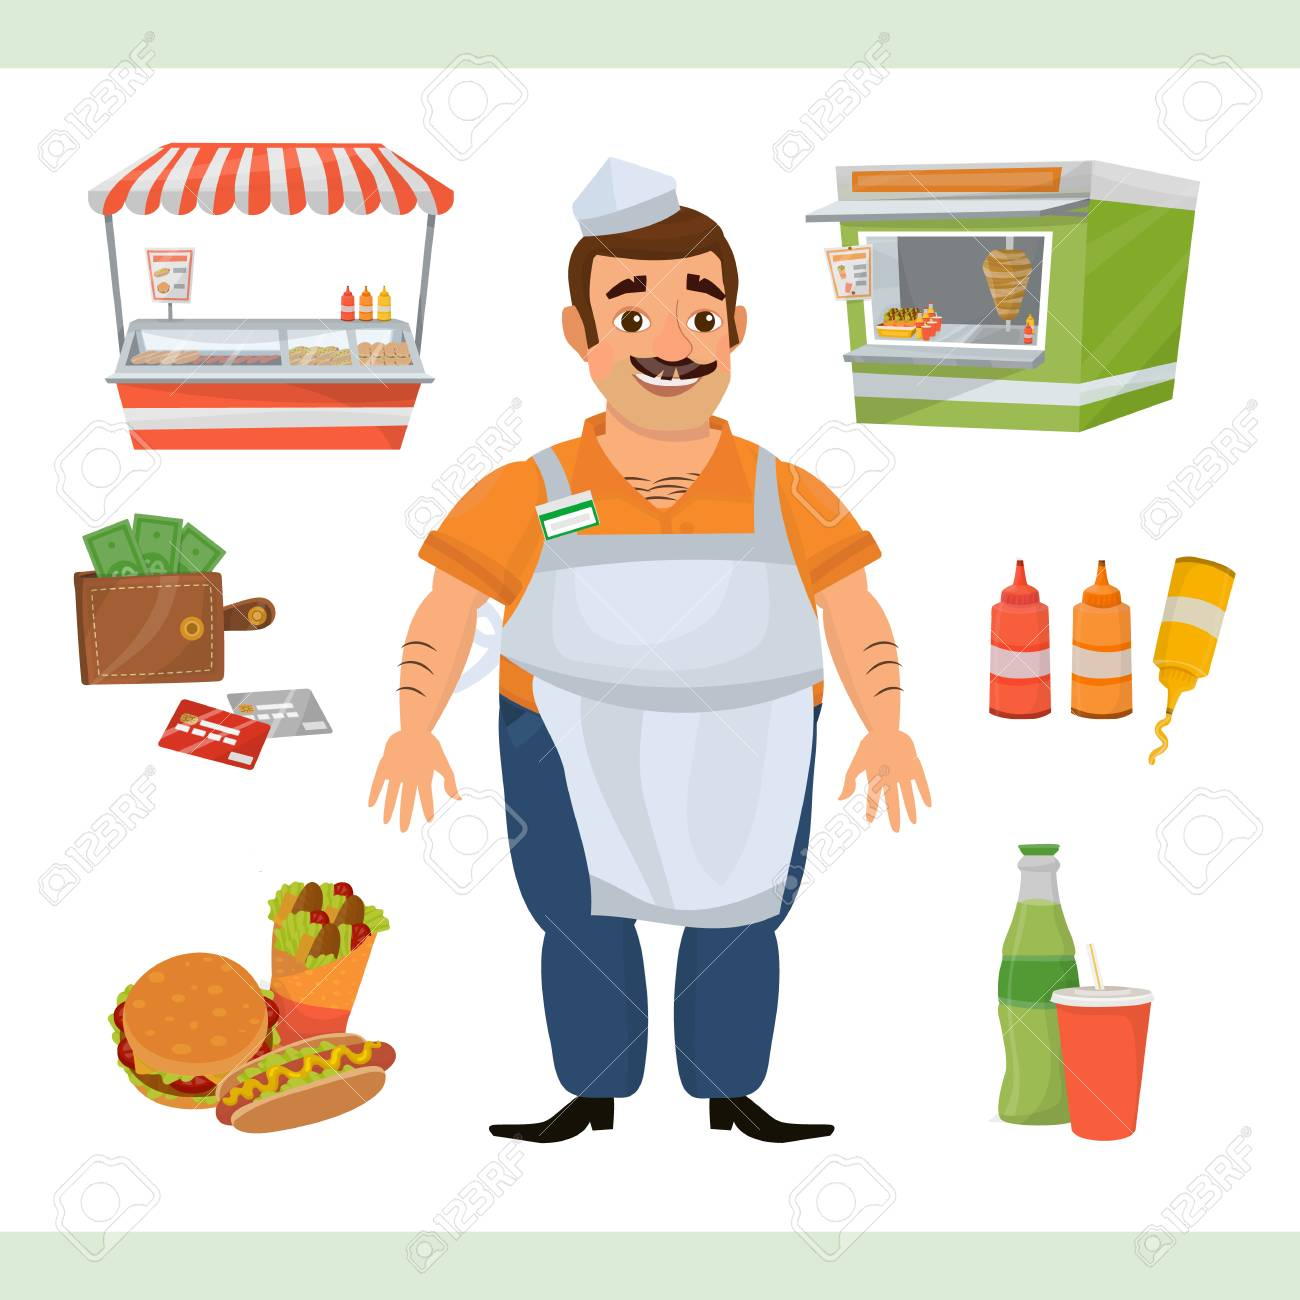 Clipart illustration with street food seller character, two stands...